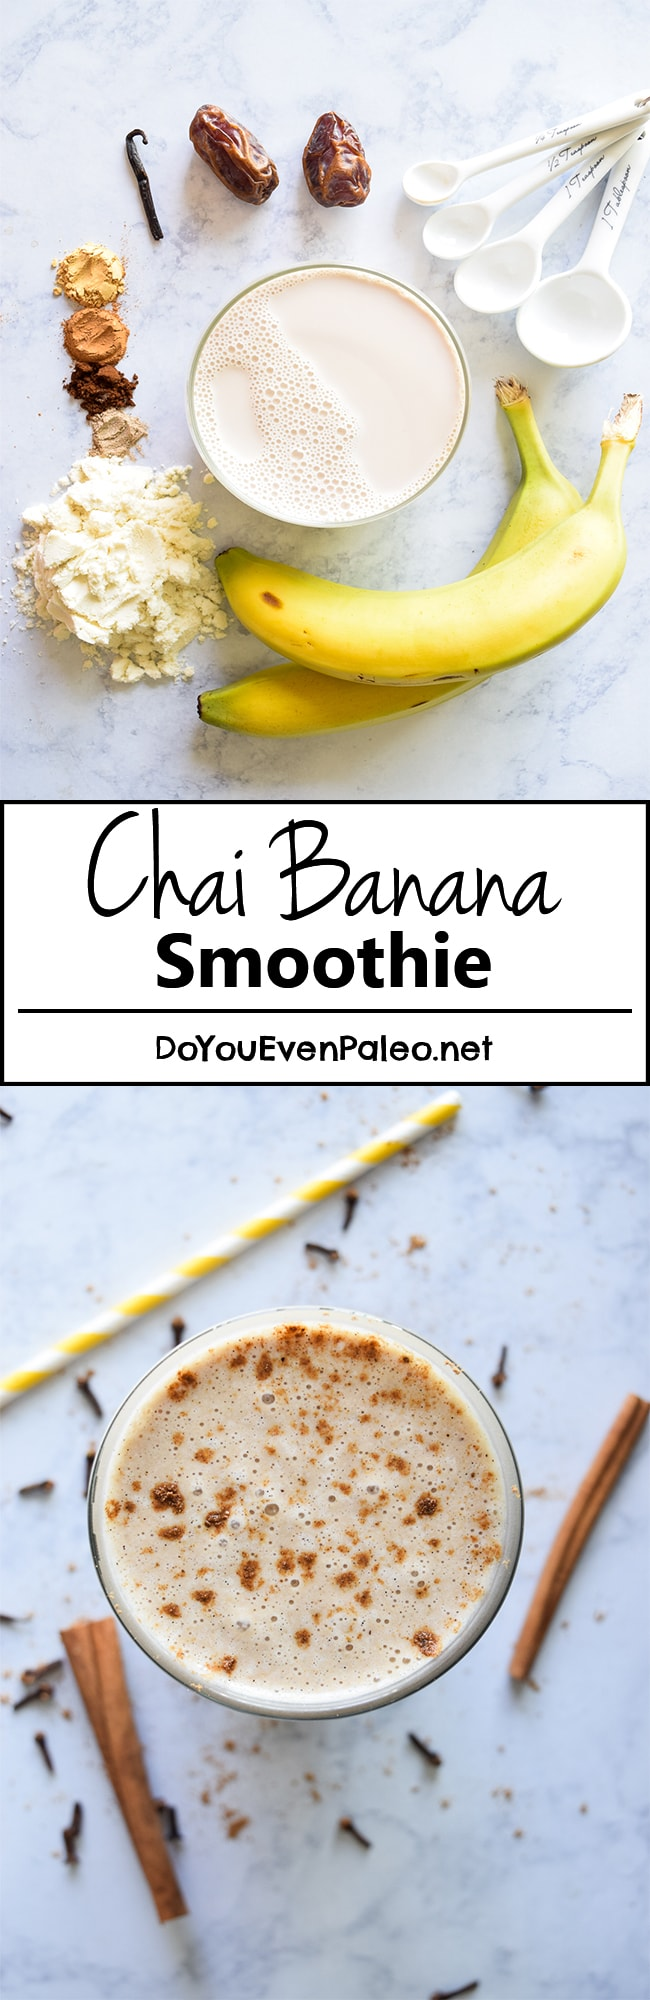 Chai Banana Smoothie - with the right blend of spices, this smoothie is simple and addictive! | DoYouEvenPaleo.net